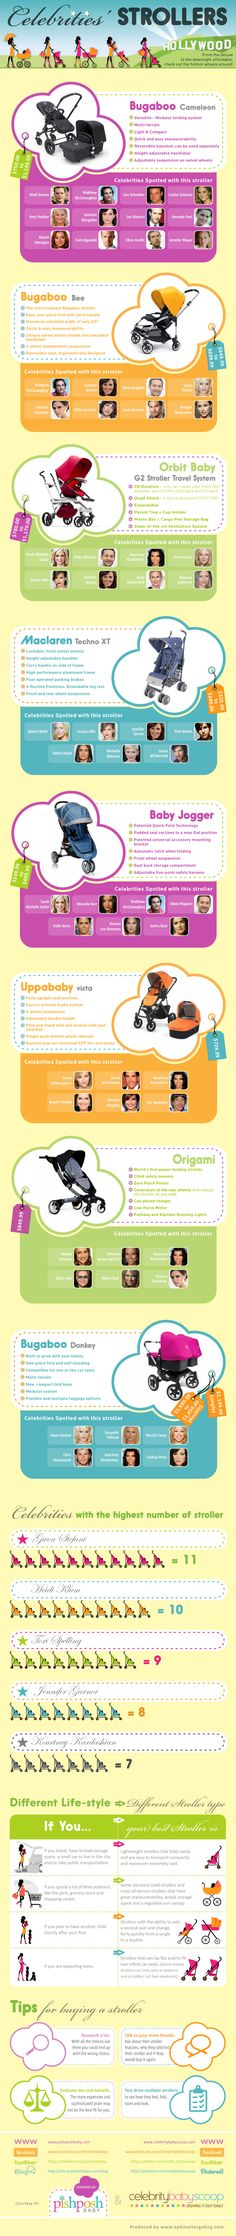 Celebrity Strollers Infographic